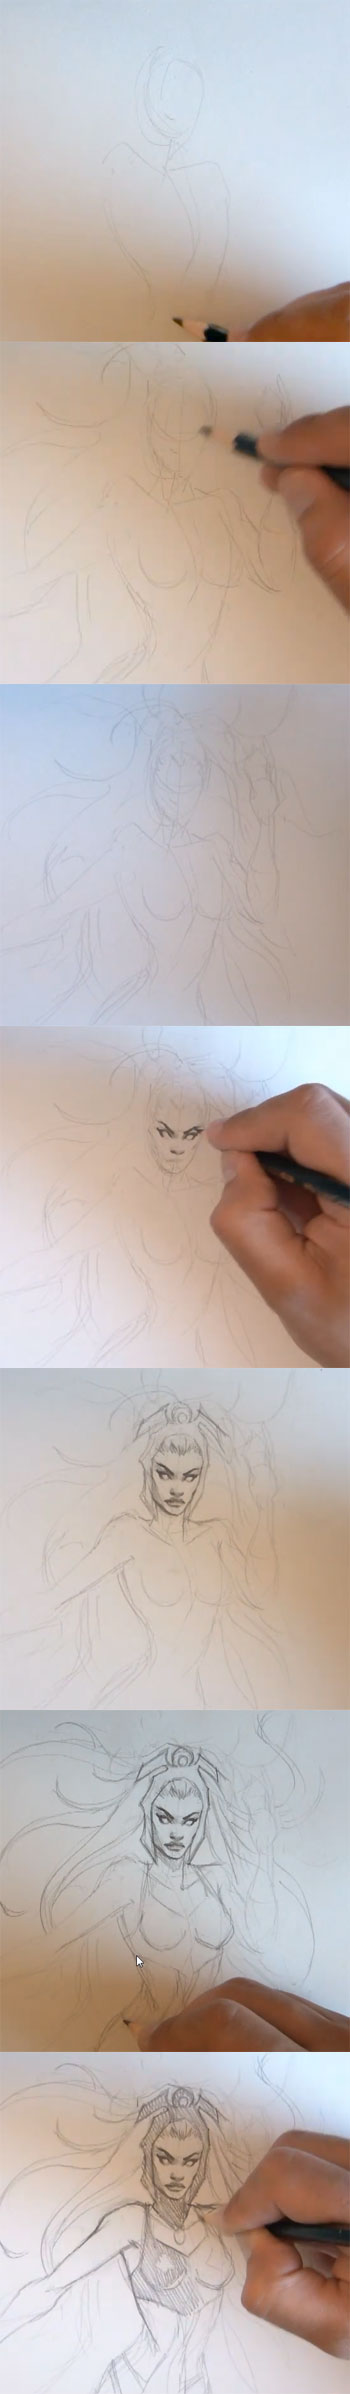 learn to draw marvel comics storm